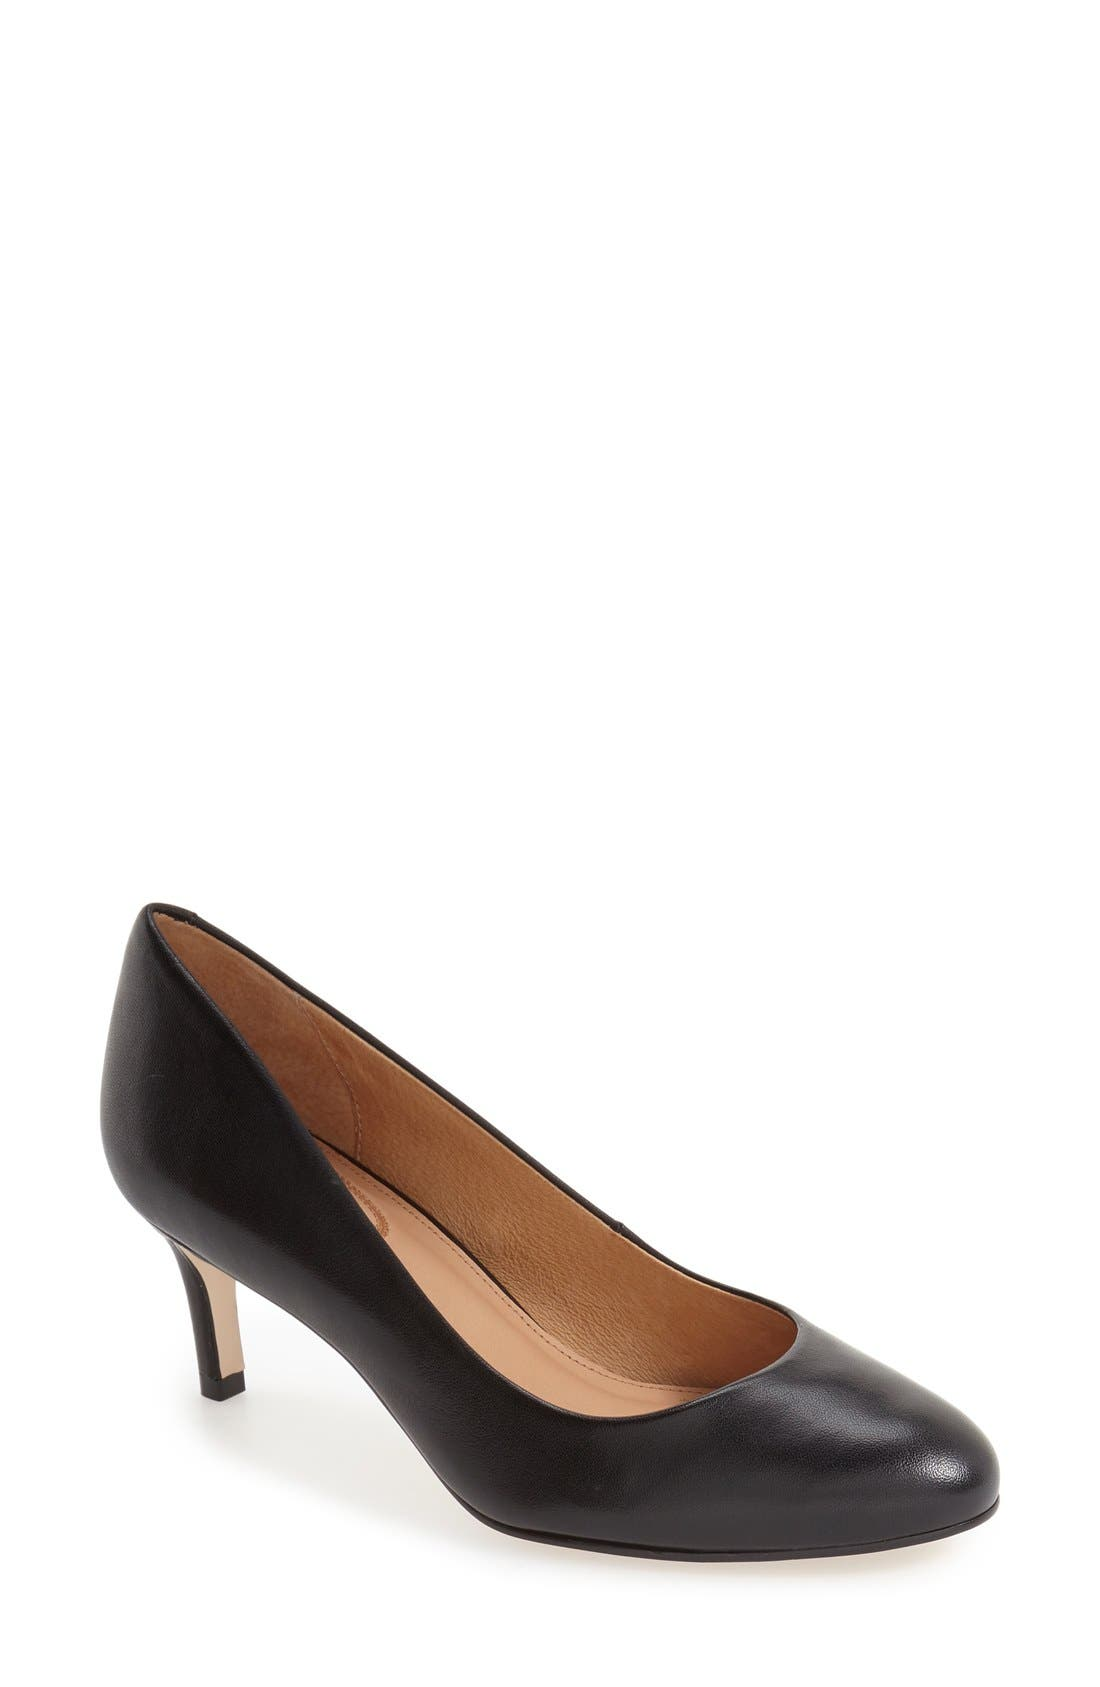 CC Corso Como 'Linden' Pump,                         Main,                         color, 001